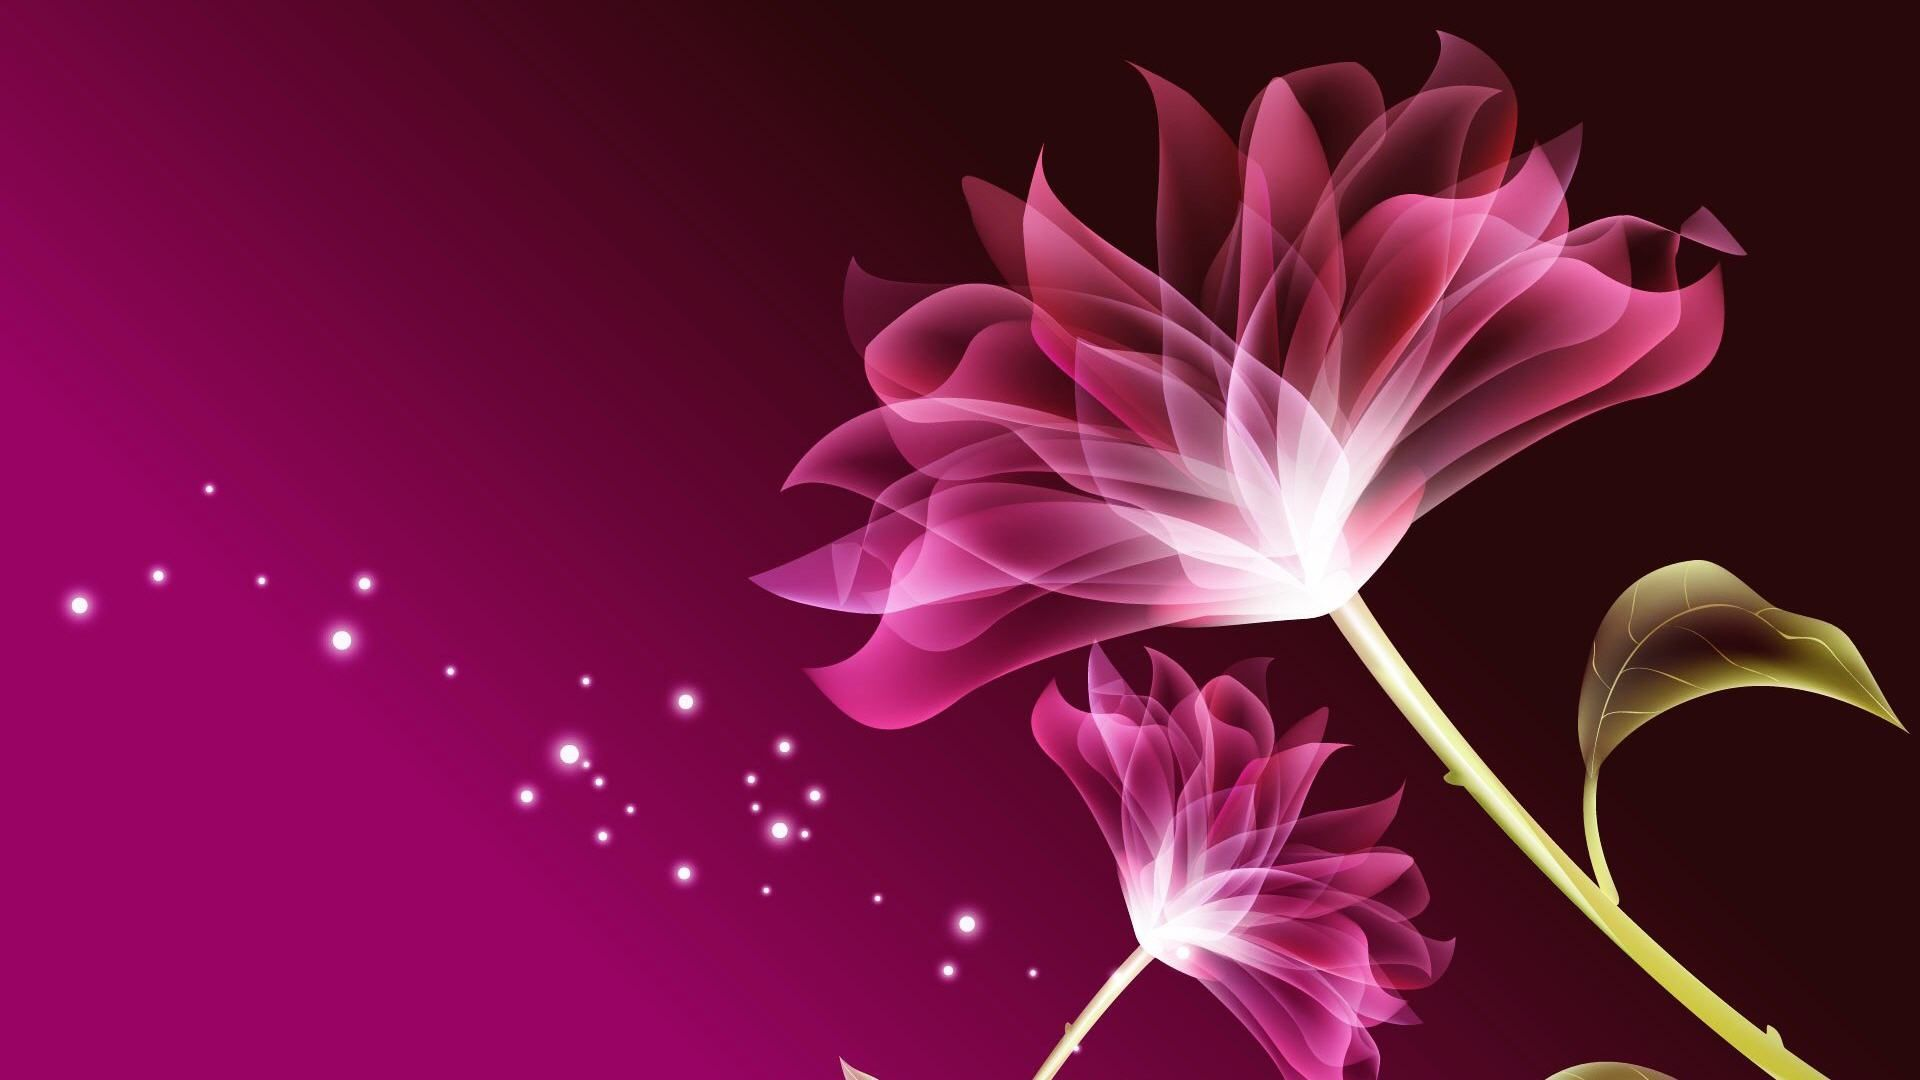 3d Pink Beautiful Flower Wallpaper Pretty Flowers In 2019